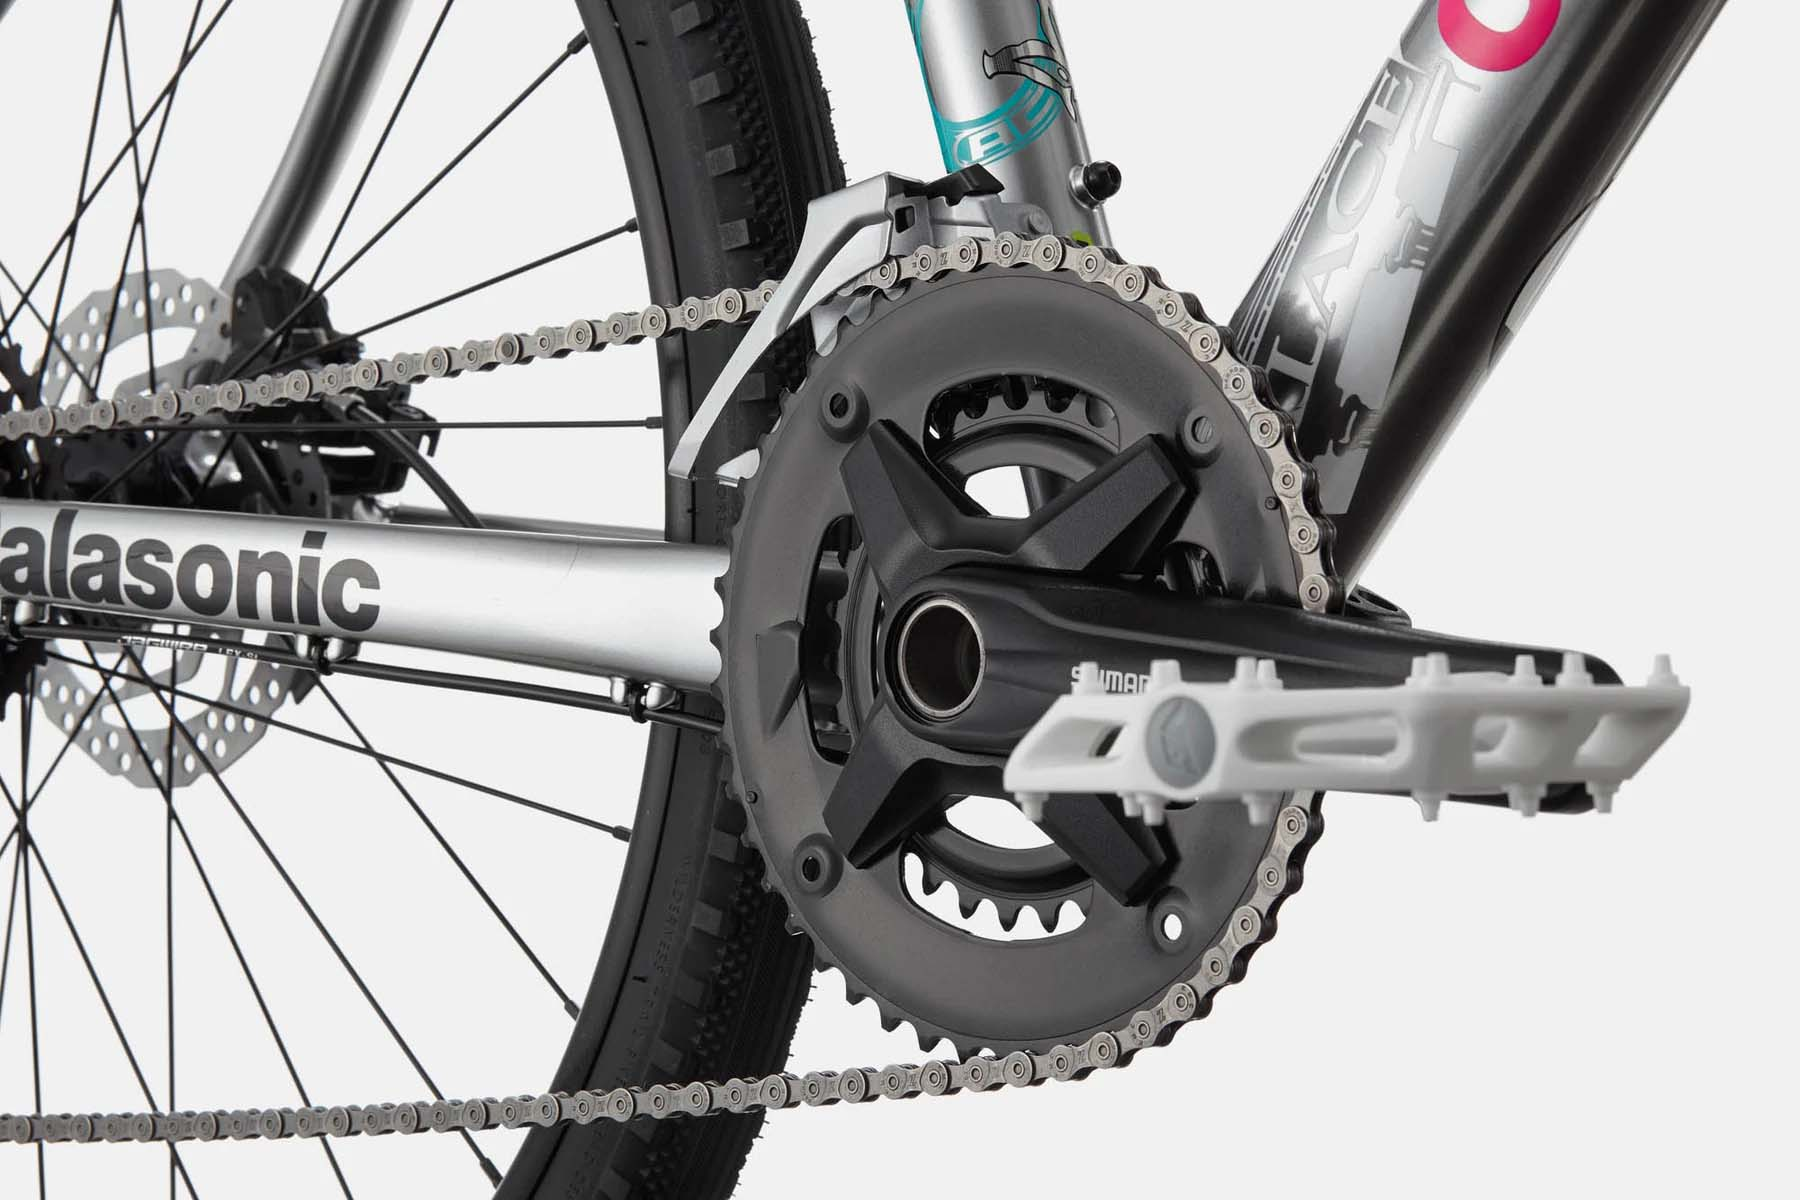 2x9 drivetrain with flat pedals